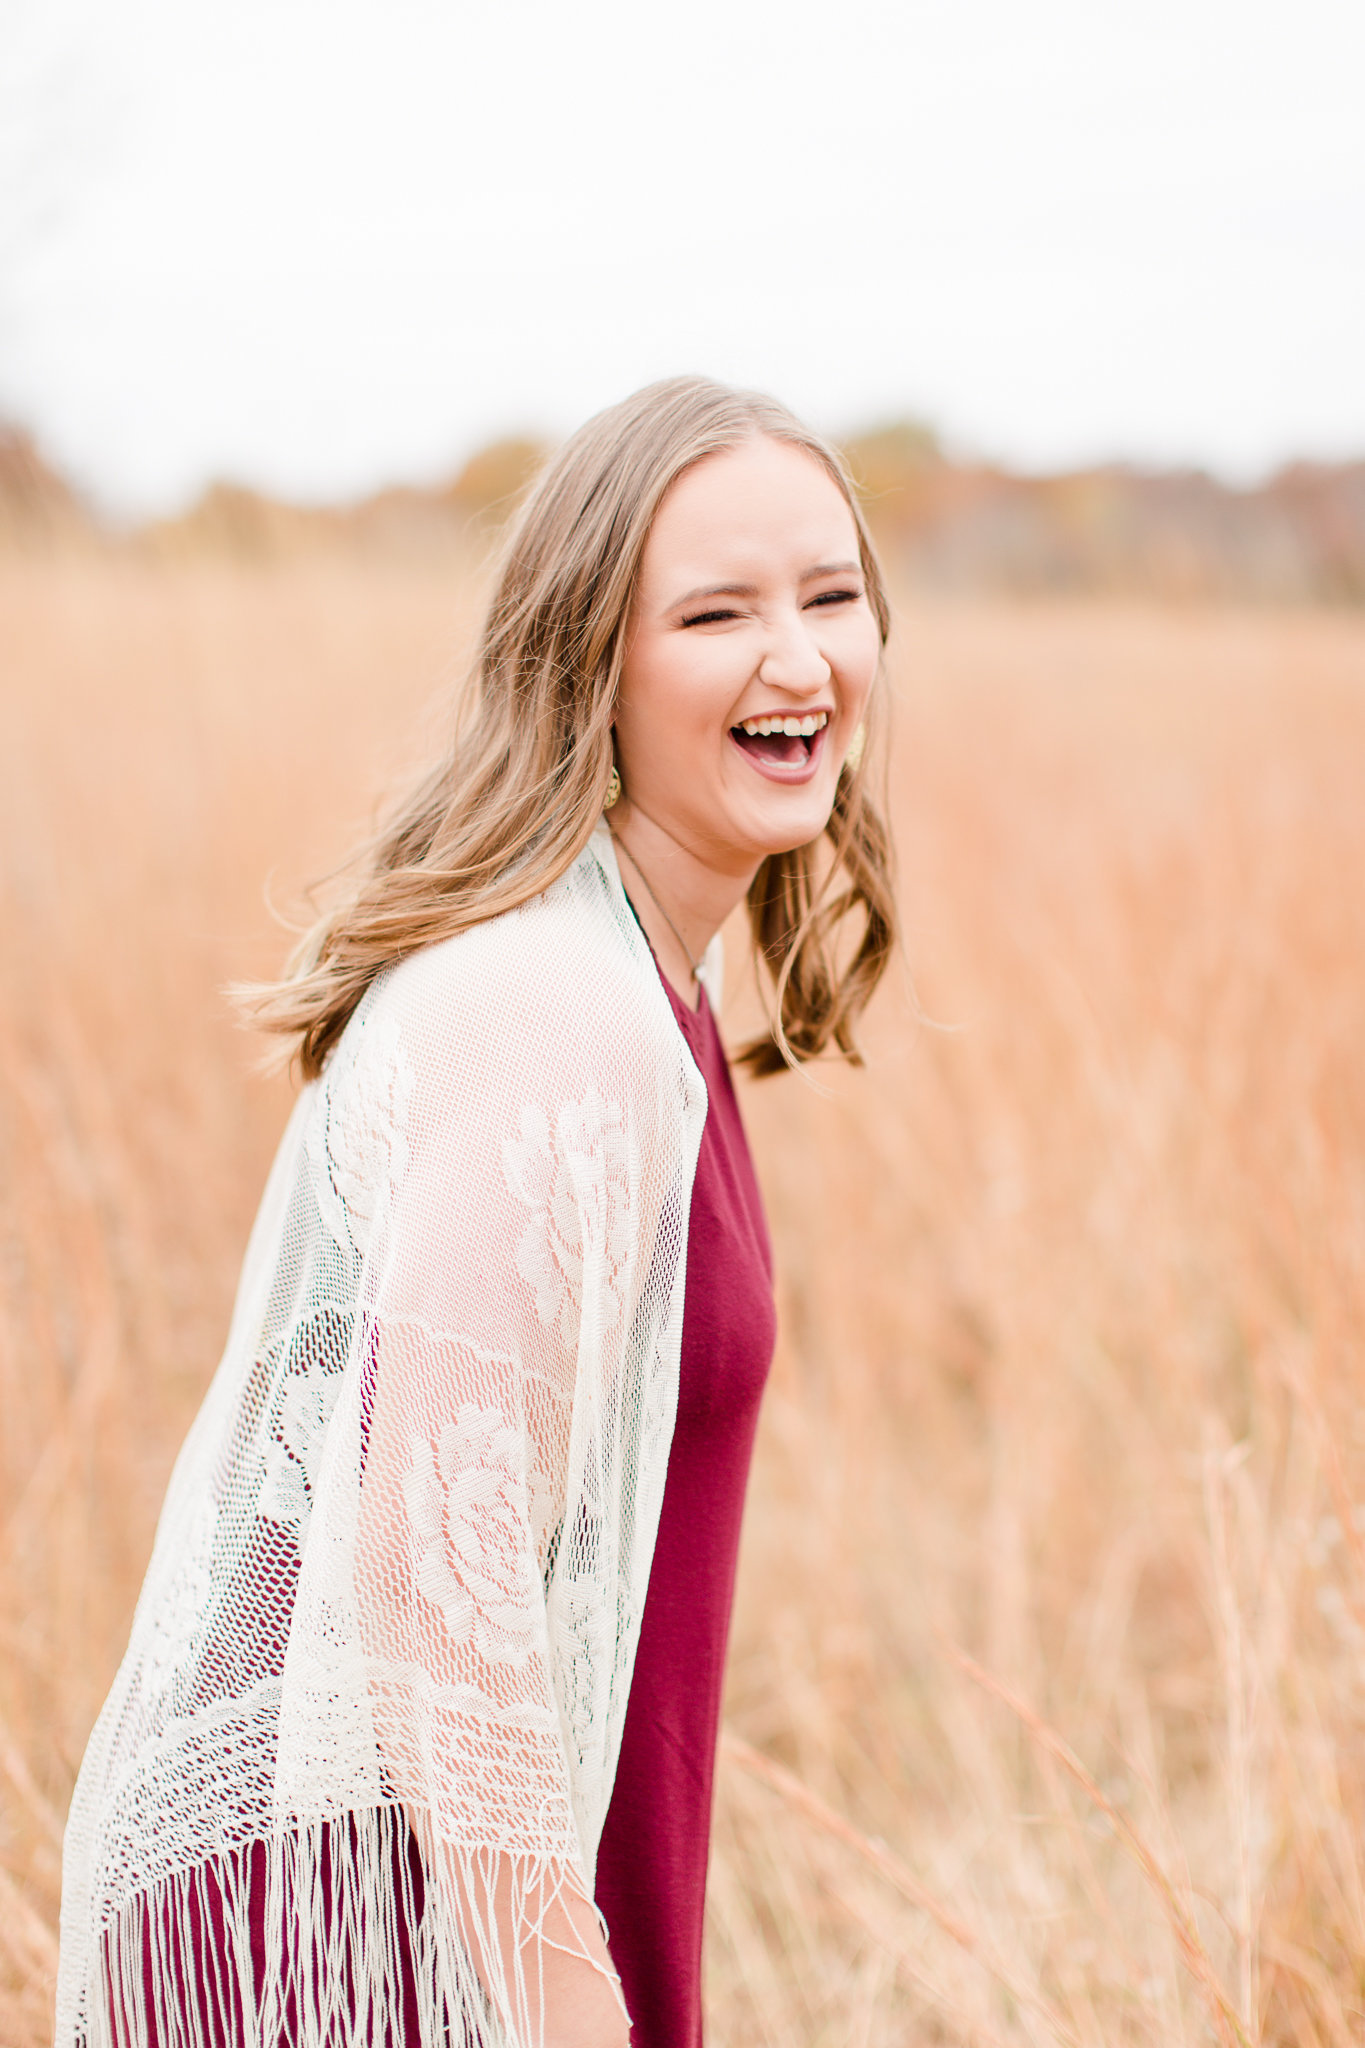 Tulsa-Oklahoma-Senior-Photographer-Holly-Felts-Photography-2